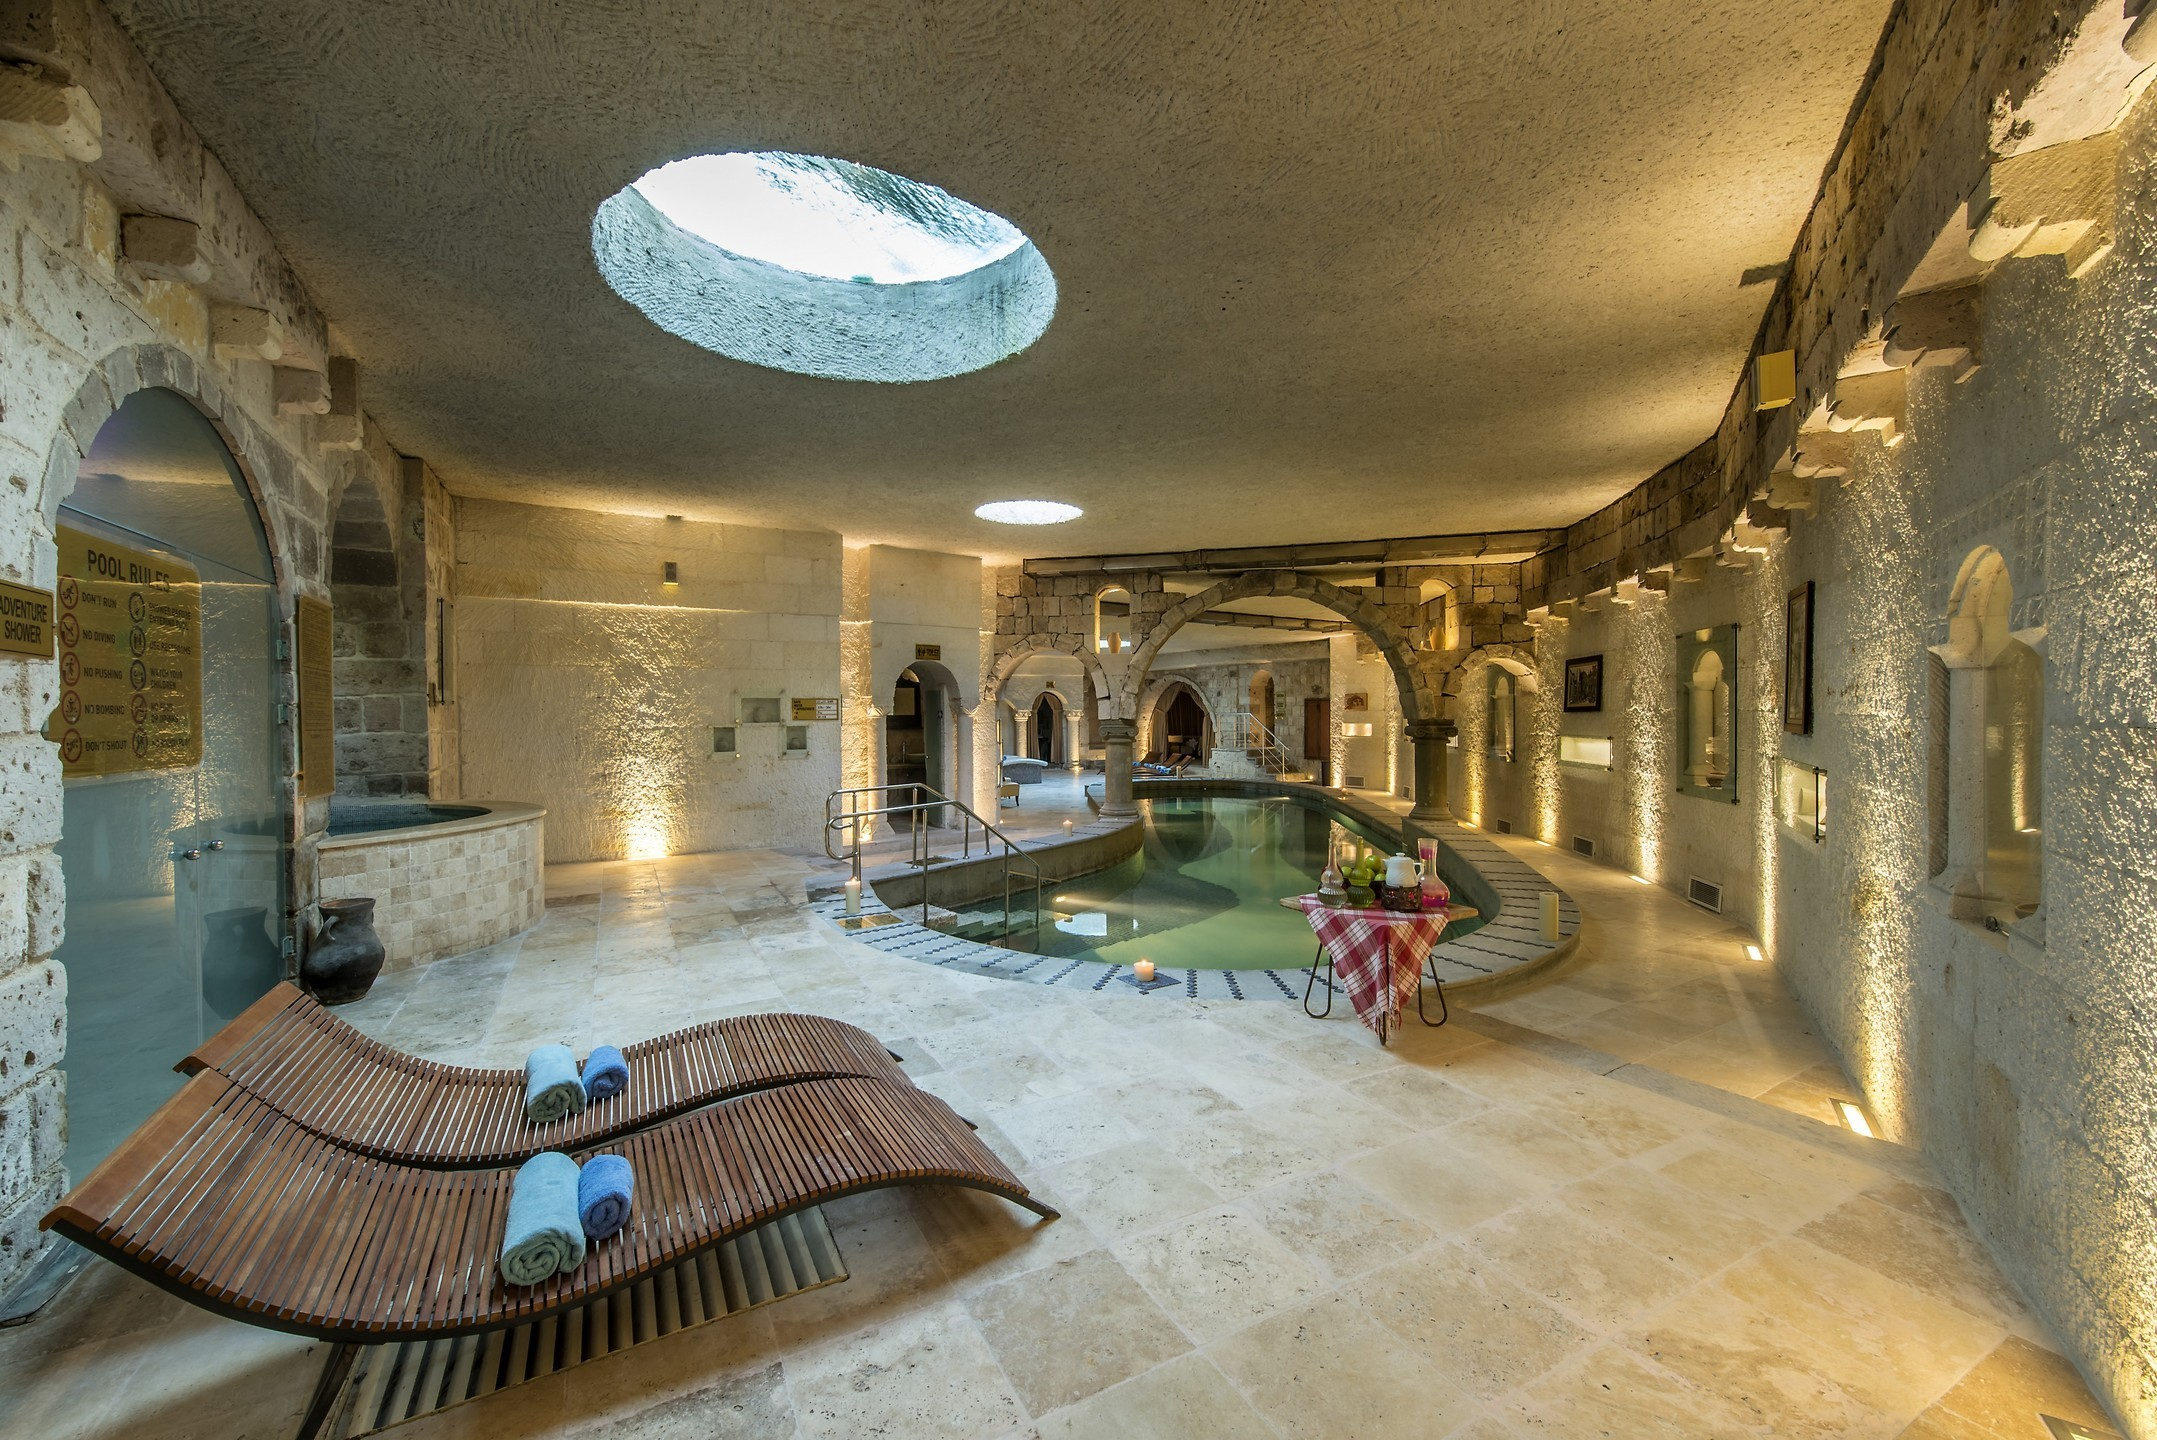 Anatolian-Houses-Cave-Hotel-Genel-212911